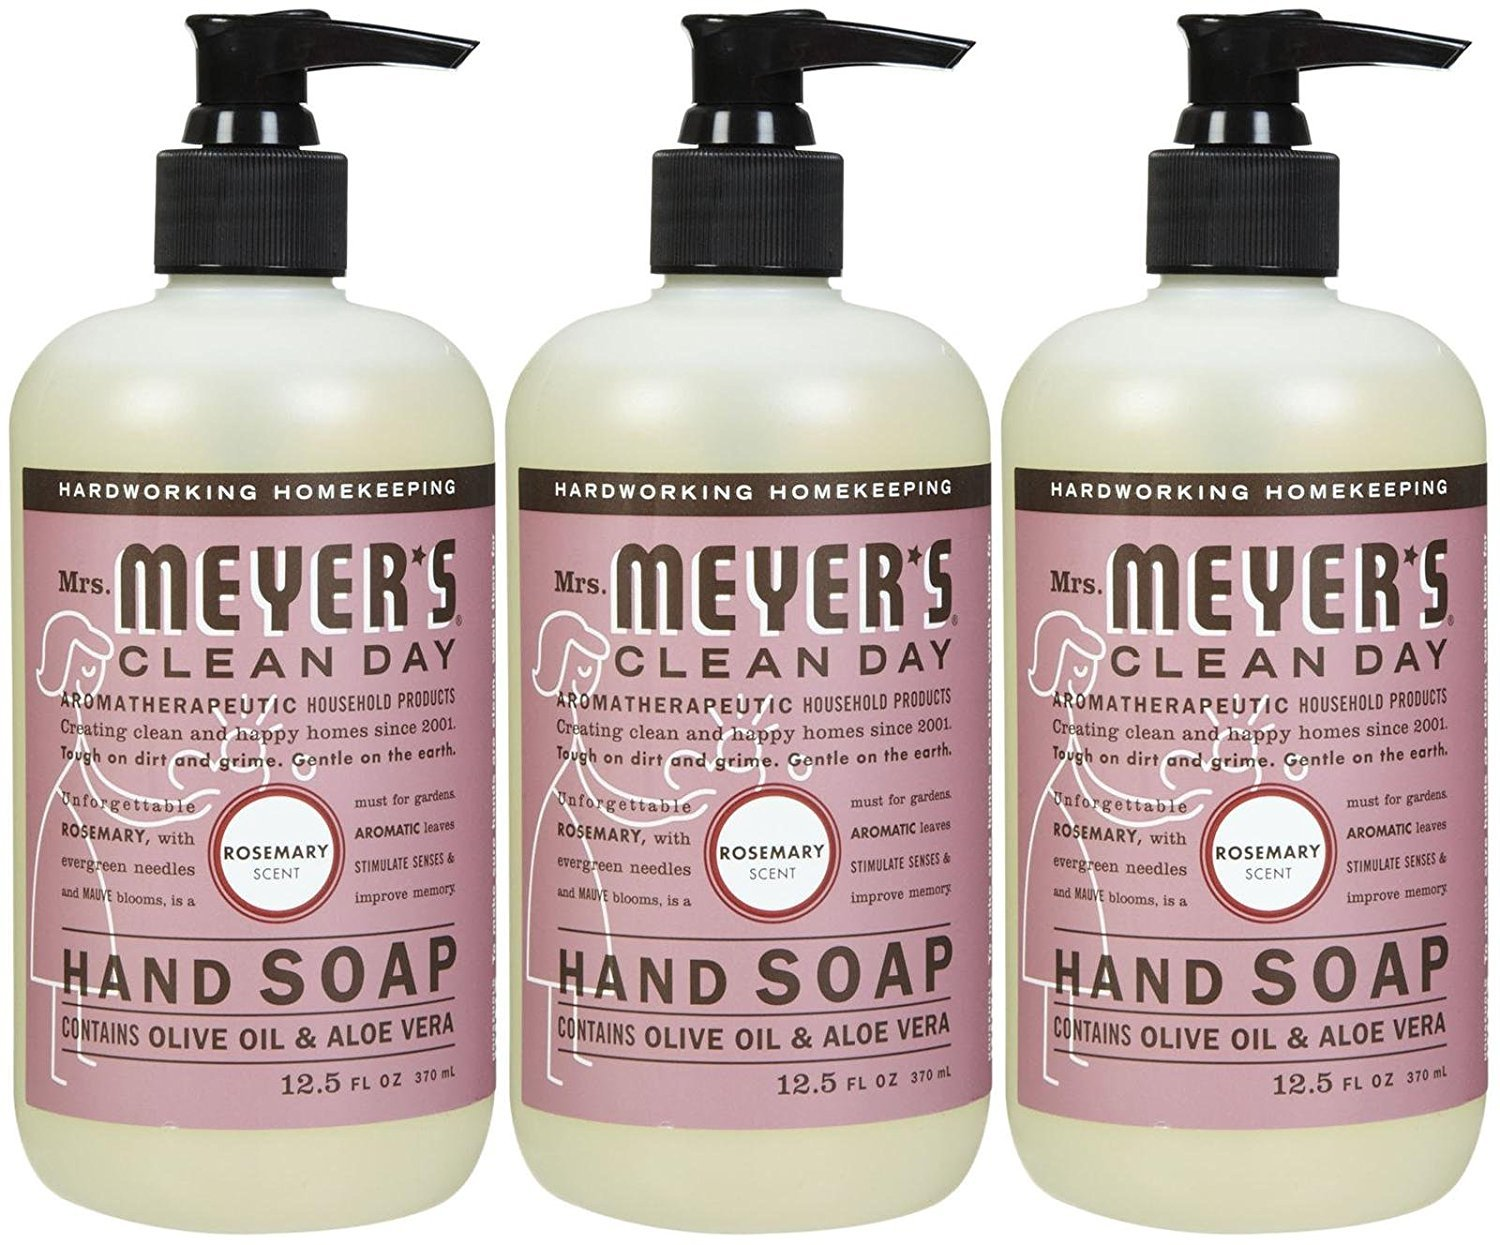 Mrs. Meyers Clean Day Liquid Hand Soap - Rosemary - 3pk - 12.5 oz